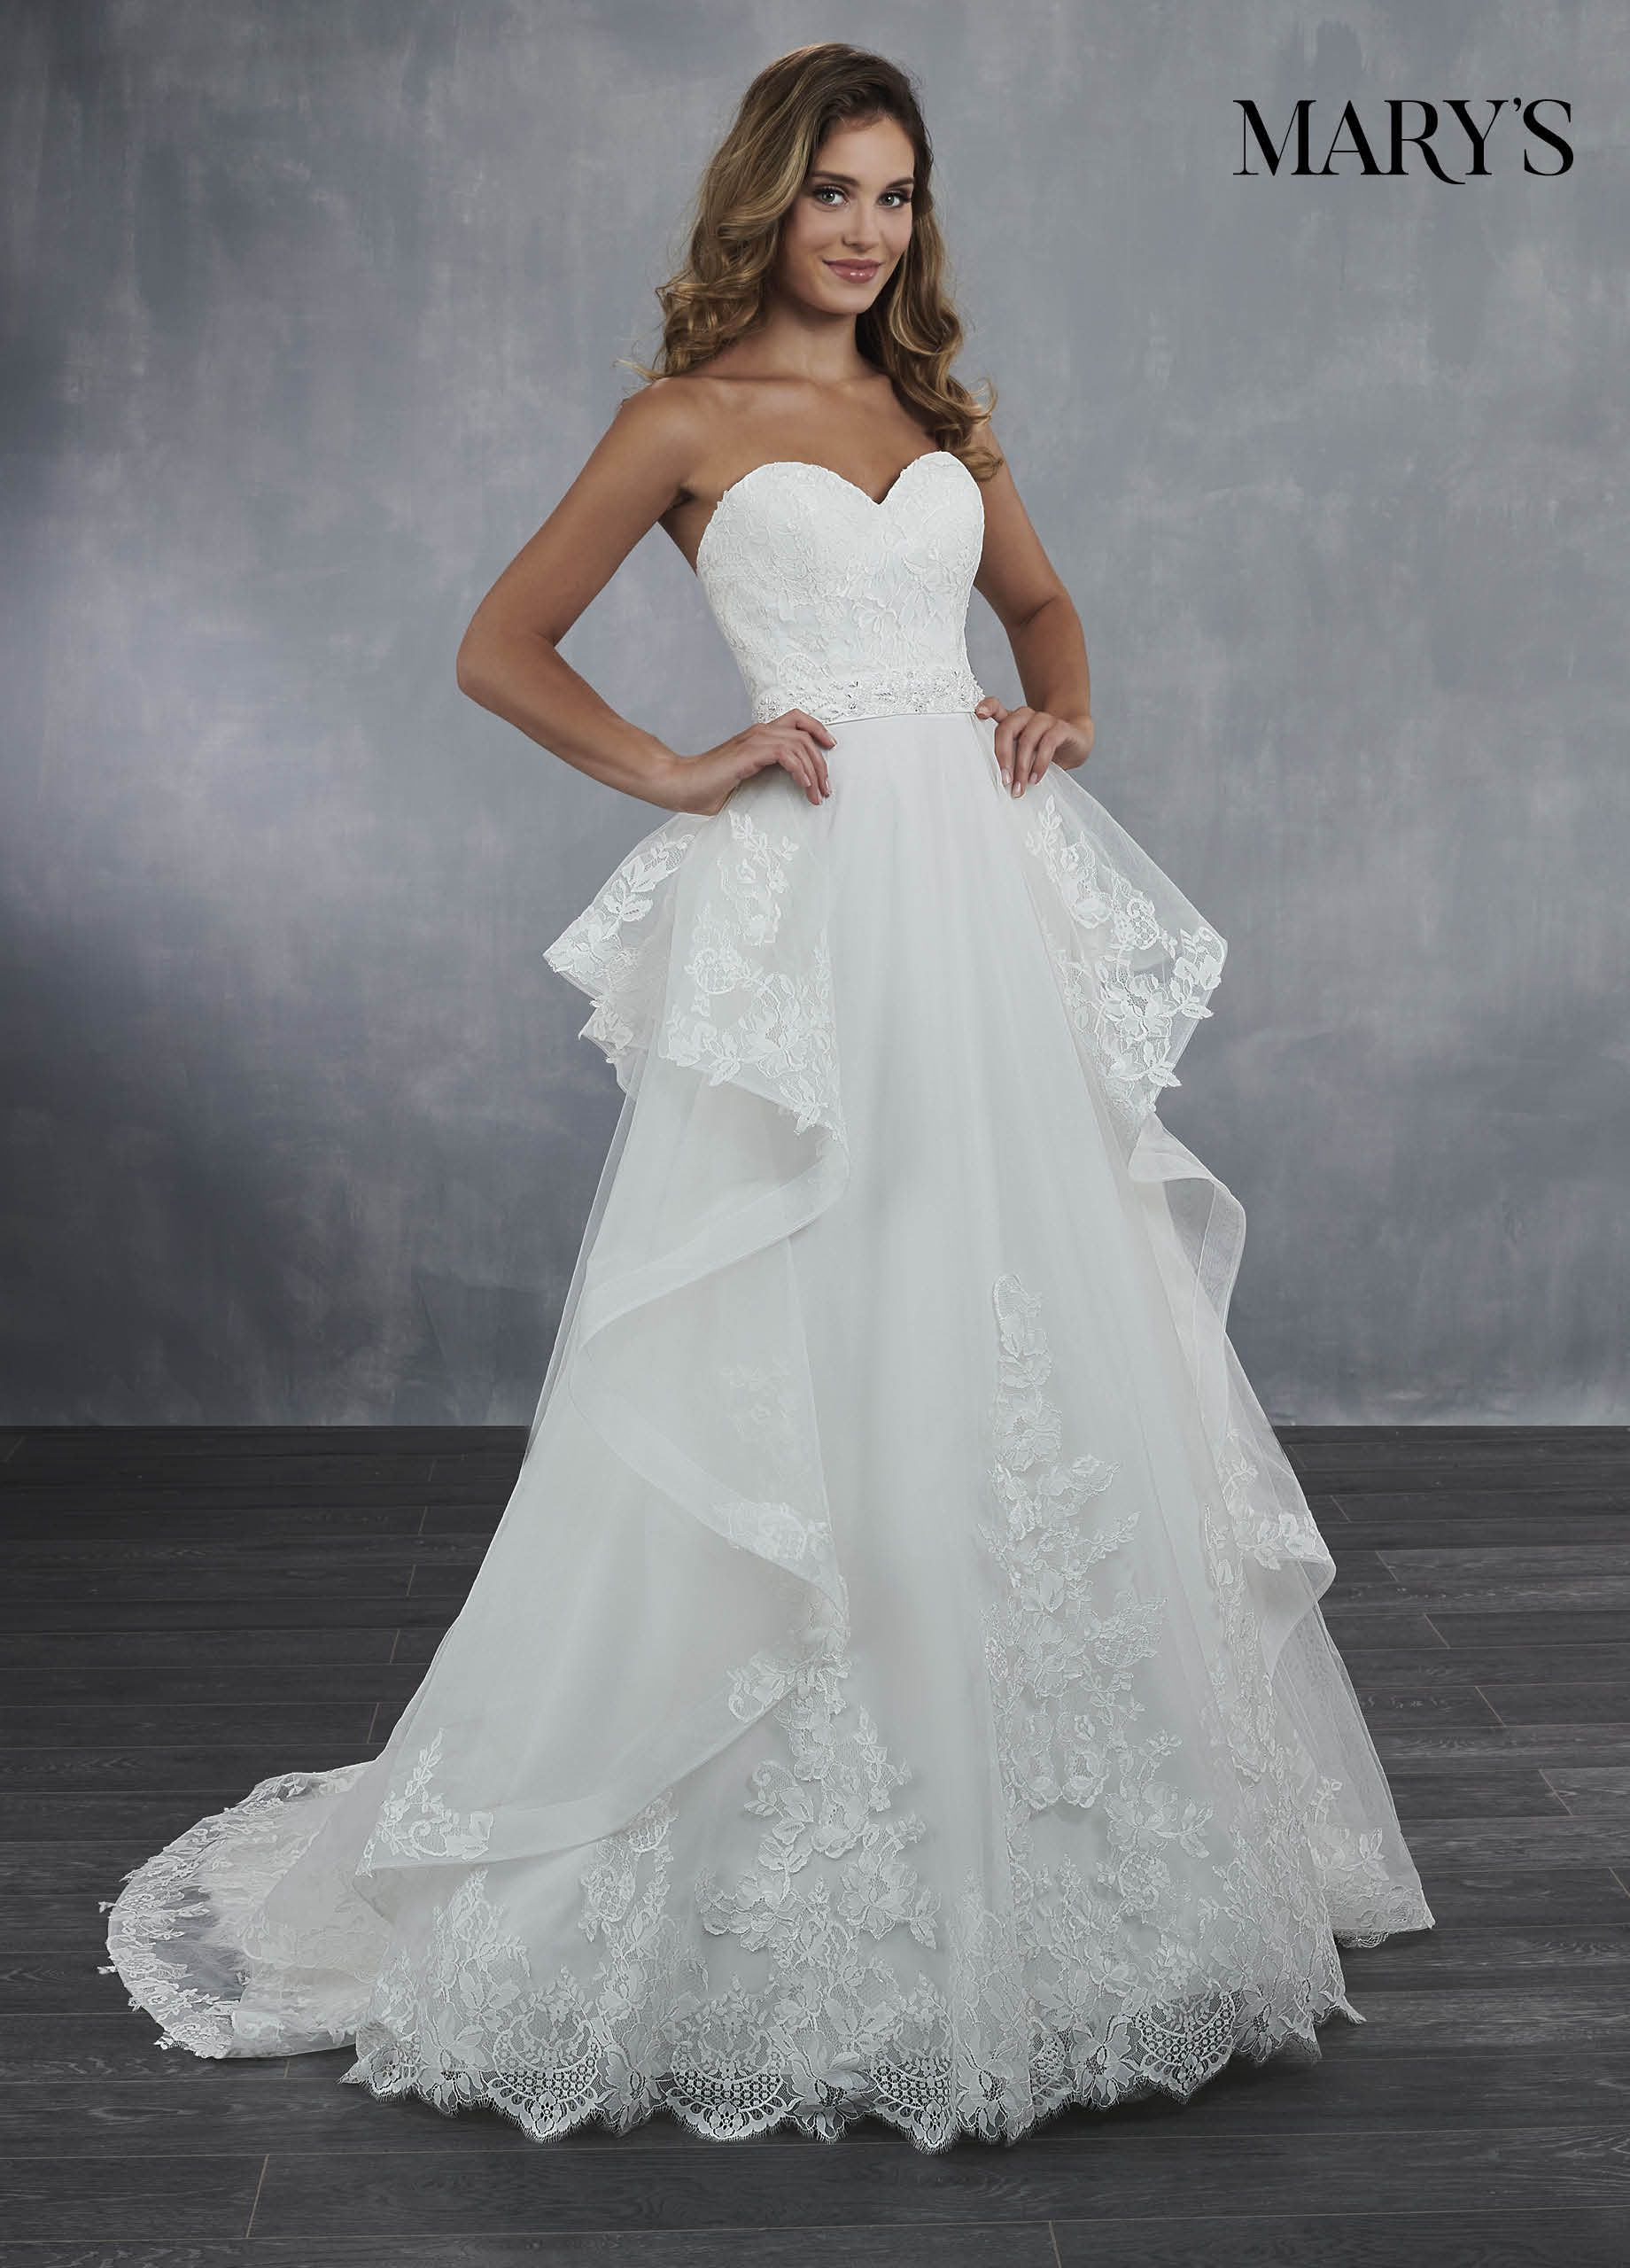 46++ Removable lace overlay wedding dress ideas in 2021